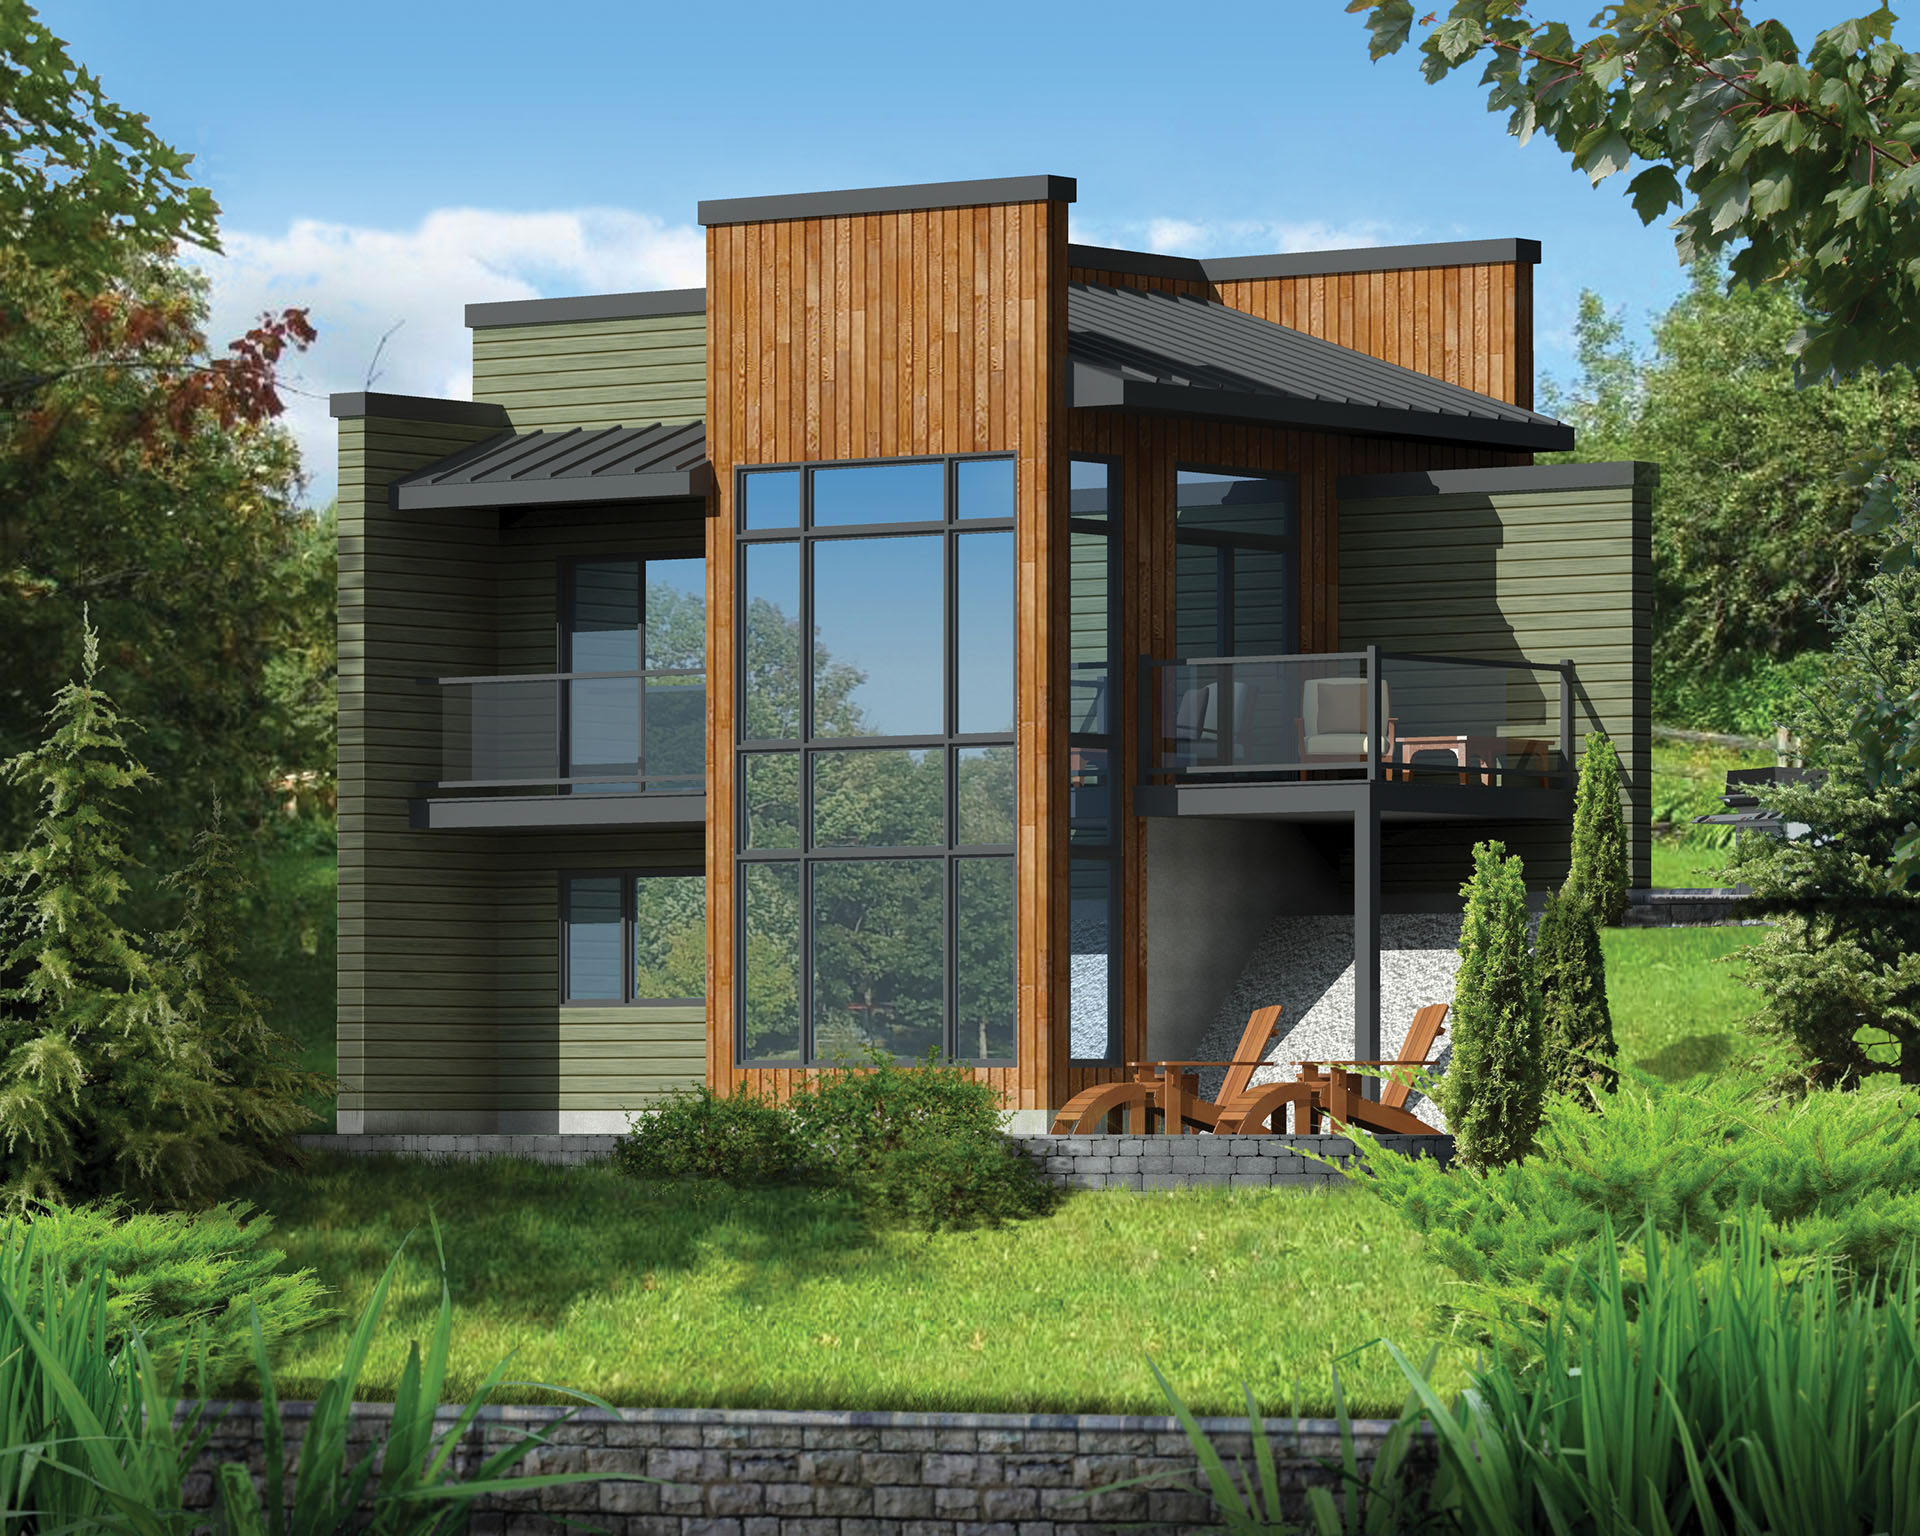 80816pm 1479210743 - Get Modern House Design Small Lot Images